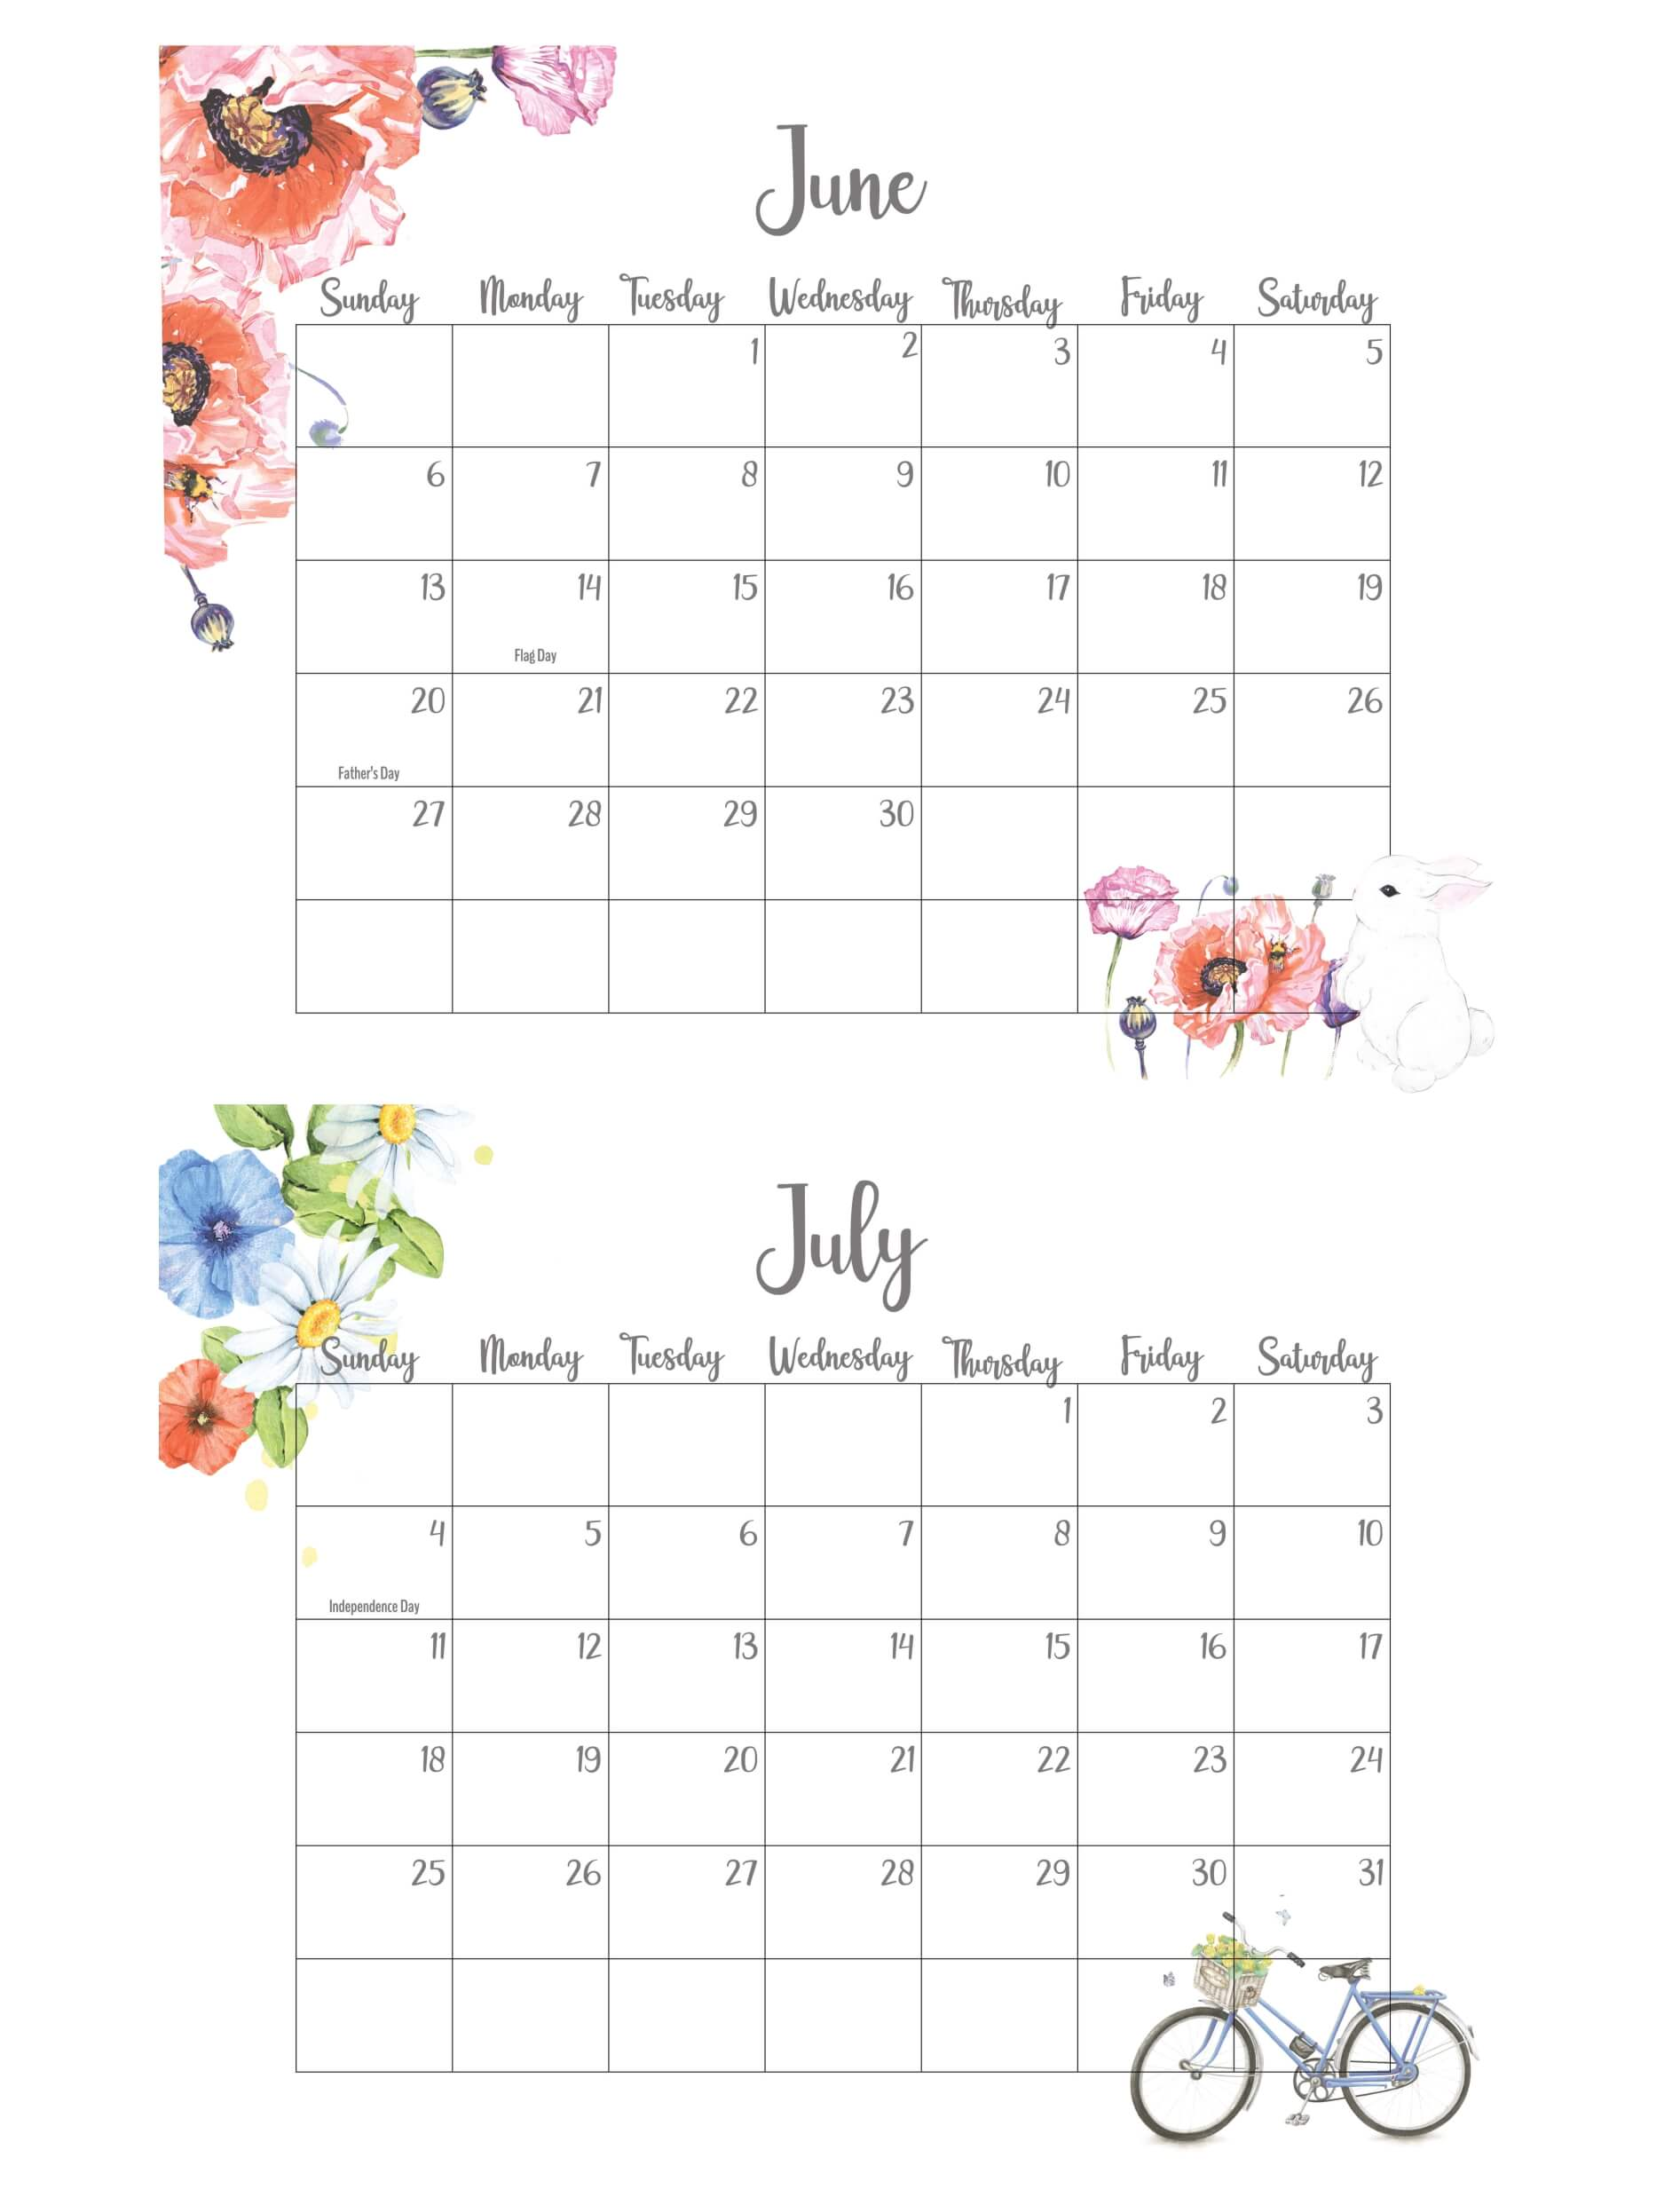 June July 2021 Calendar With Holidays